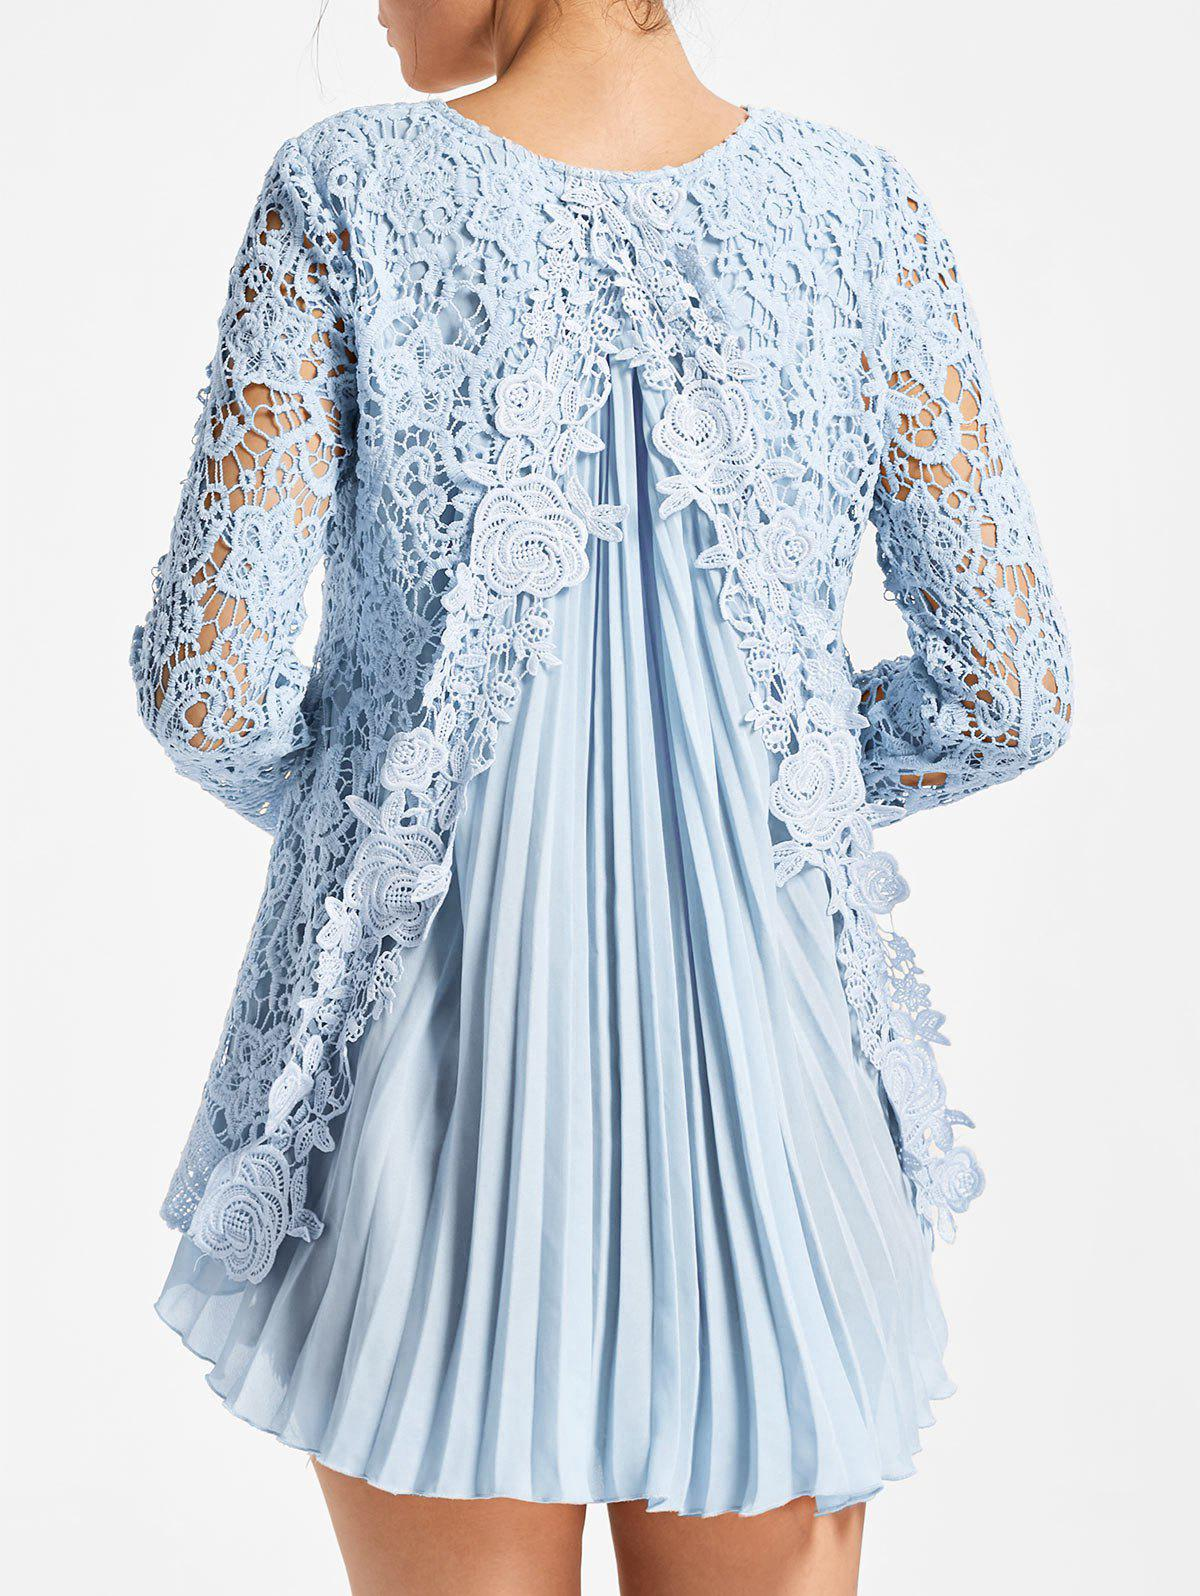 Long Sleeve Pleated High Low Lace Blouse - LIGHT BLUE M